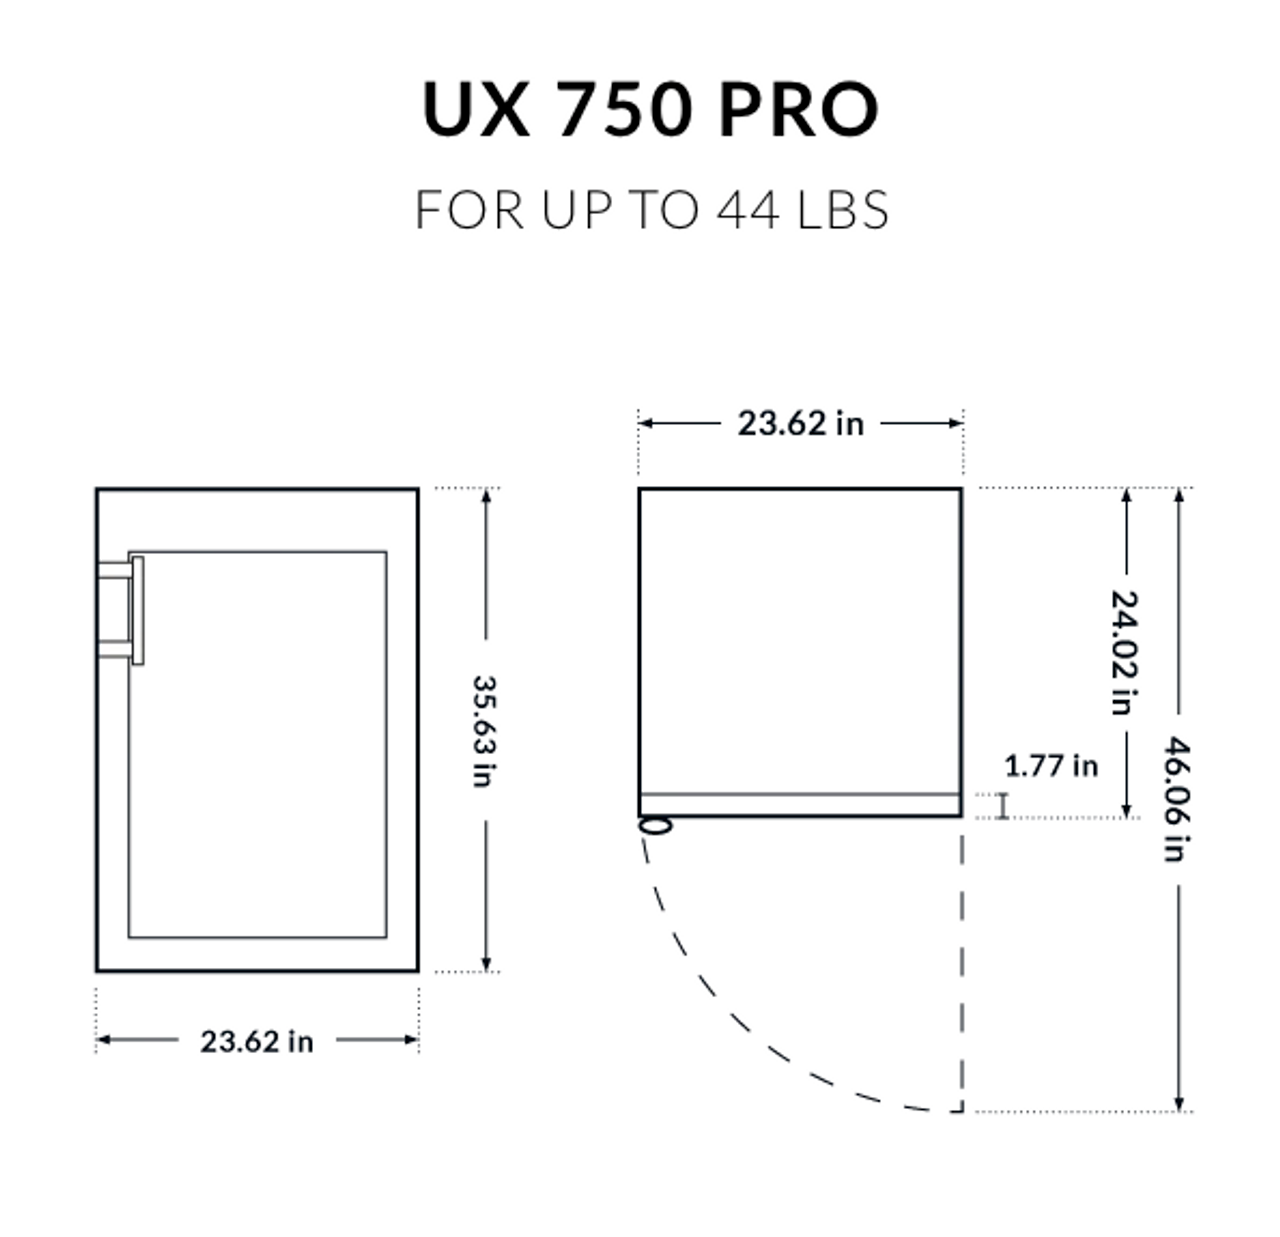 Dry Ager UX 750 Pro - Up to 44 lbs.